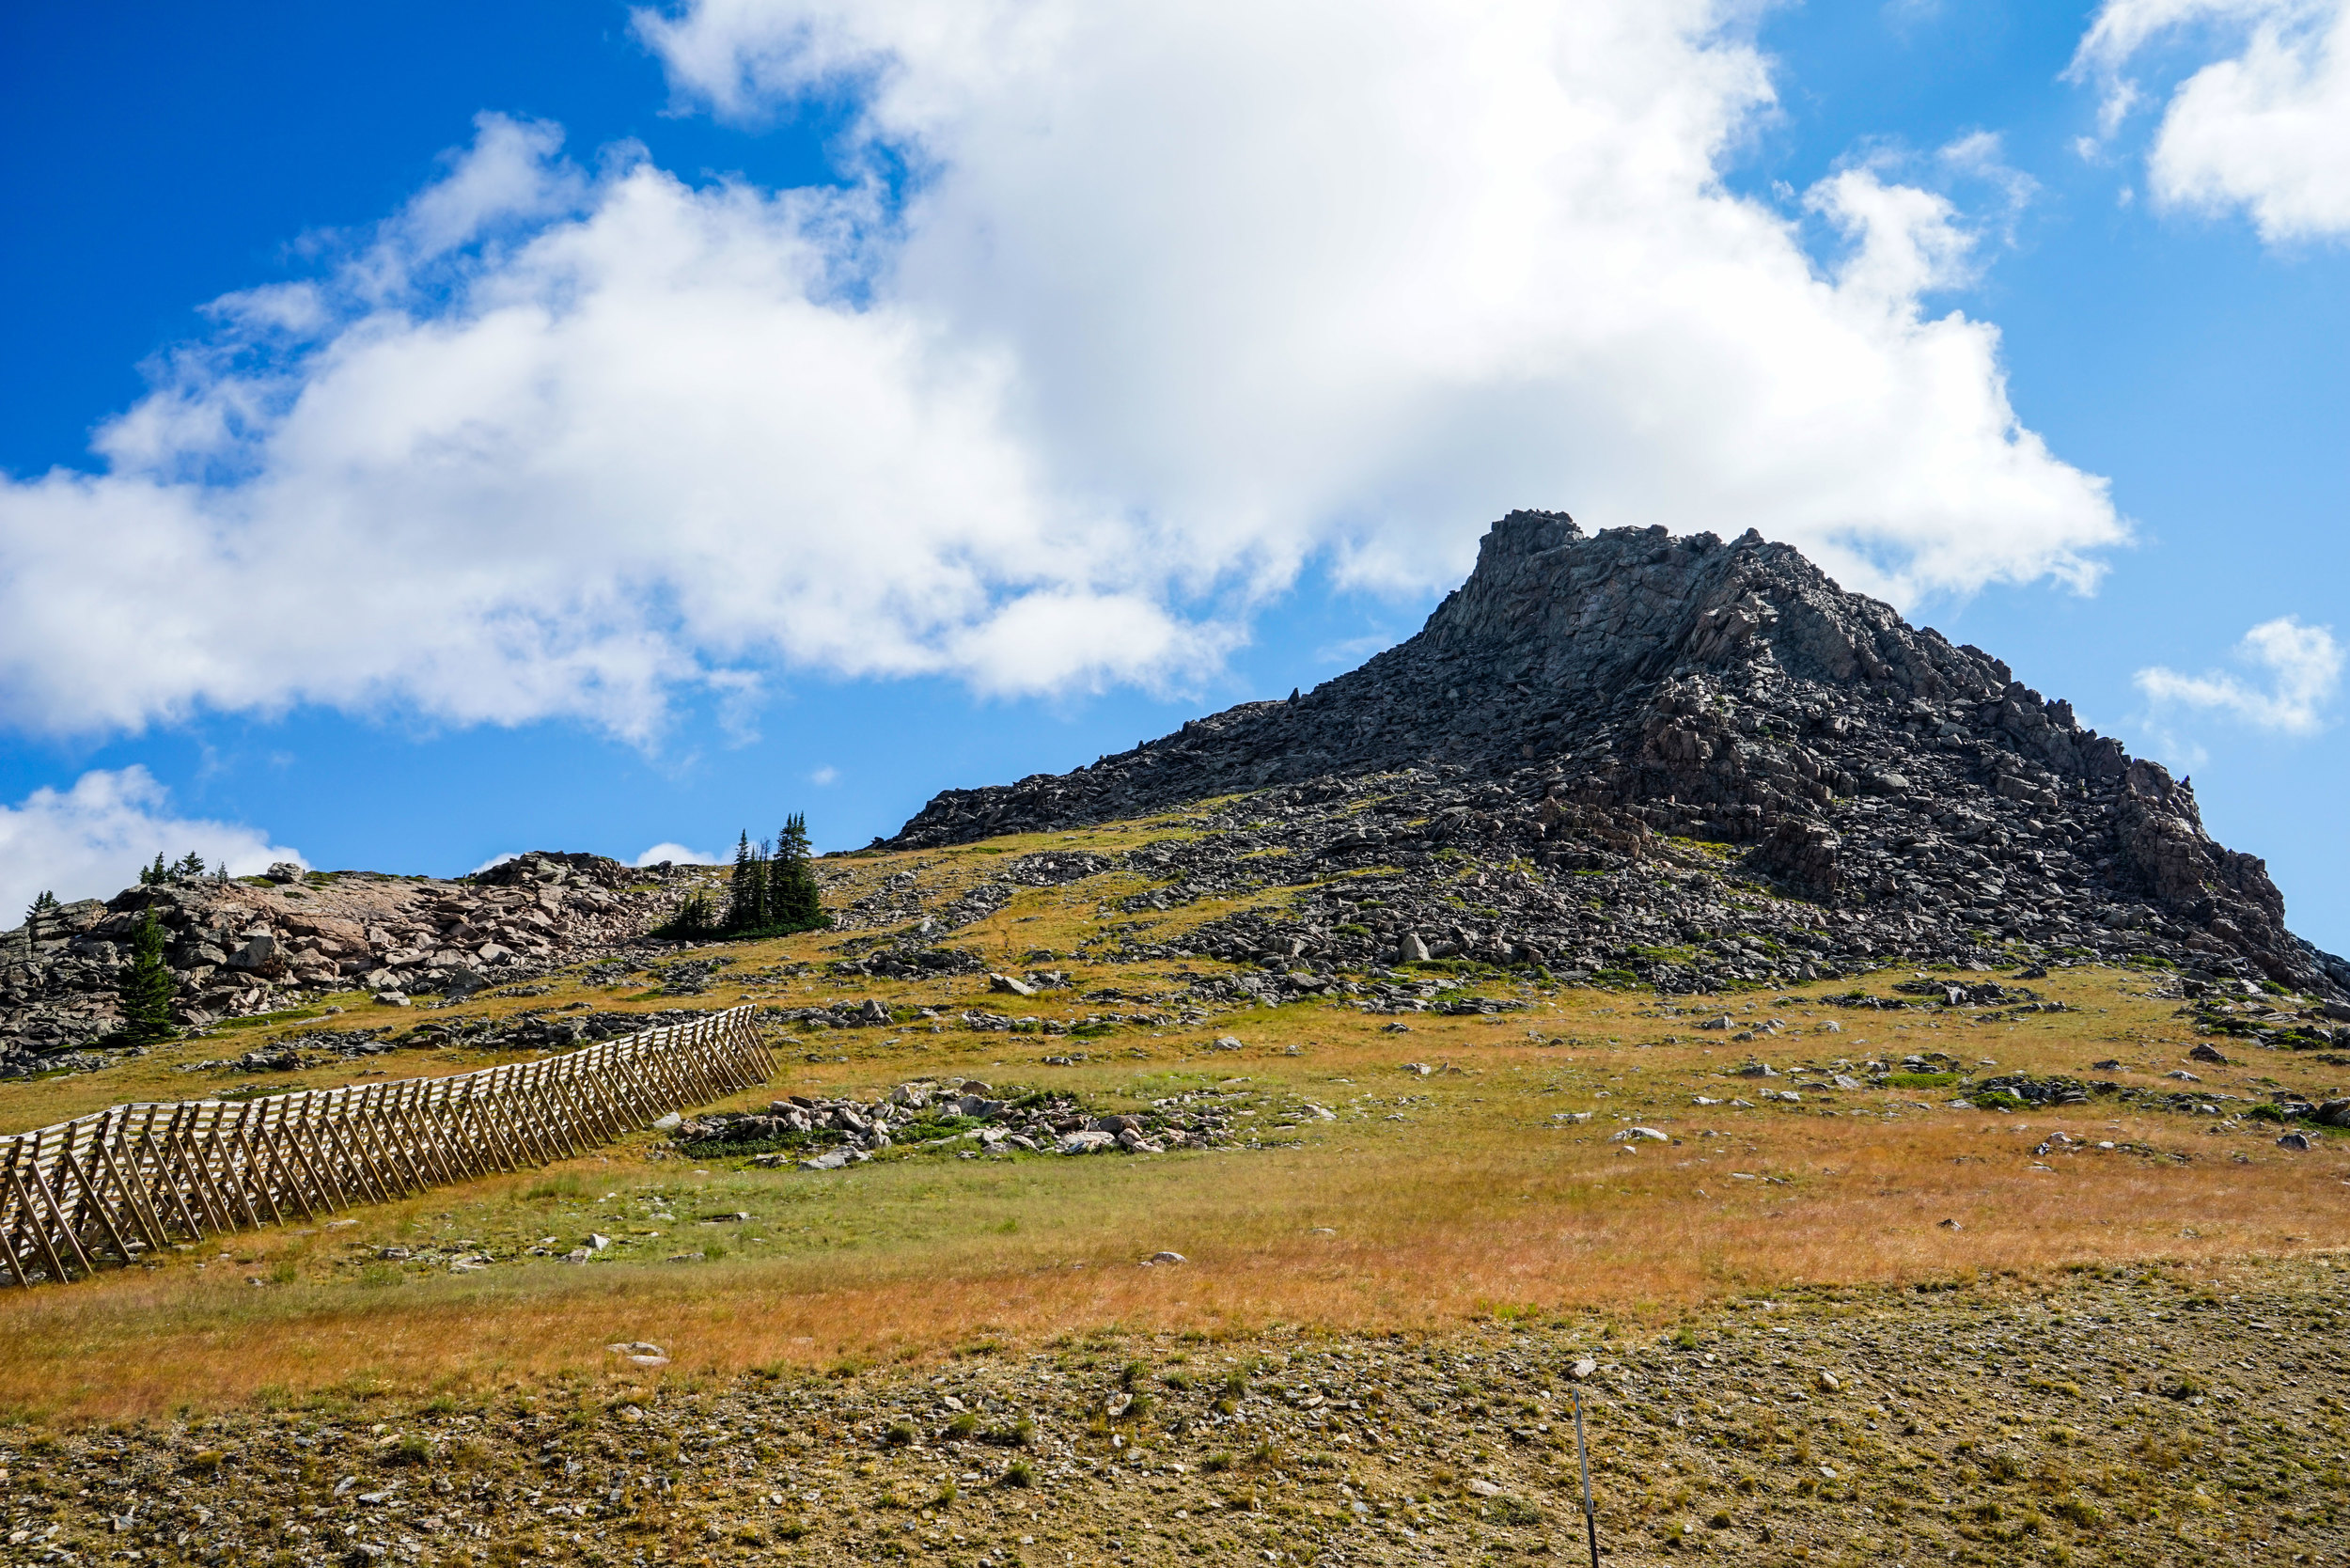 A picture of what we decided to climb up to get as high as we could. We tackle this from the west side of the photo, scrambling up large rocks and then eventually climbing to the high peak you can see in the center of the formation.